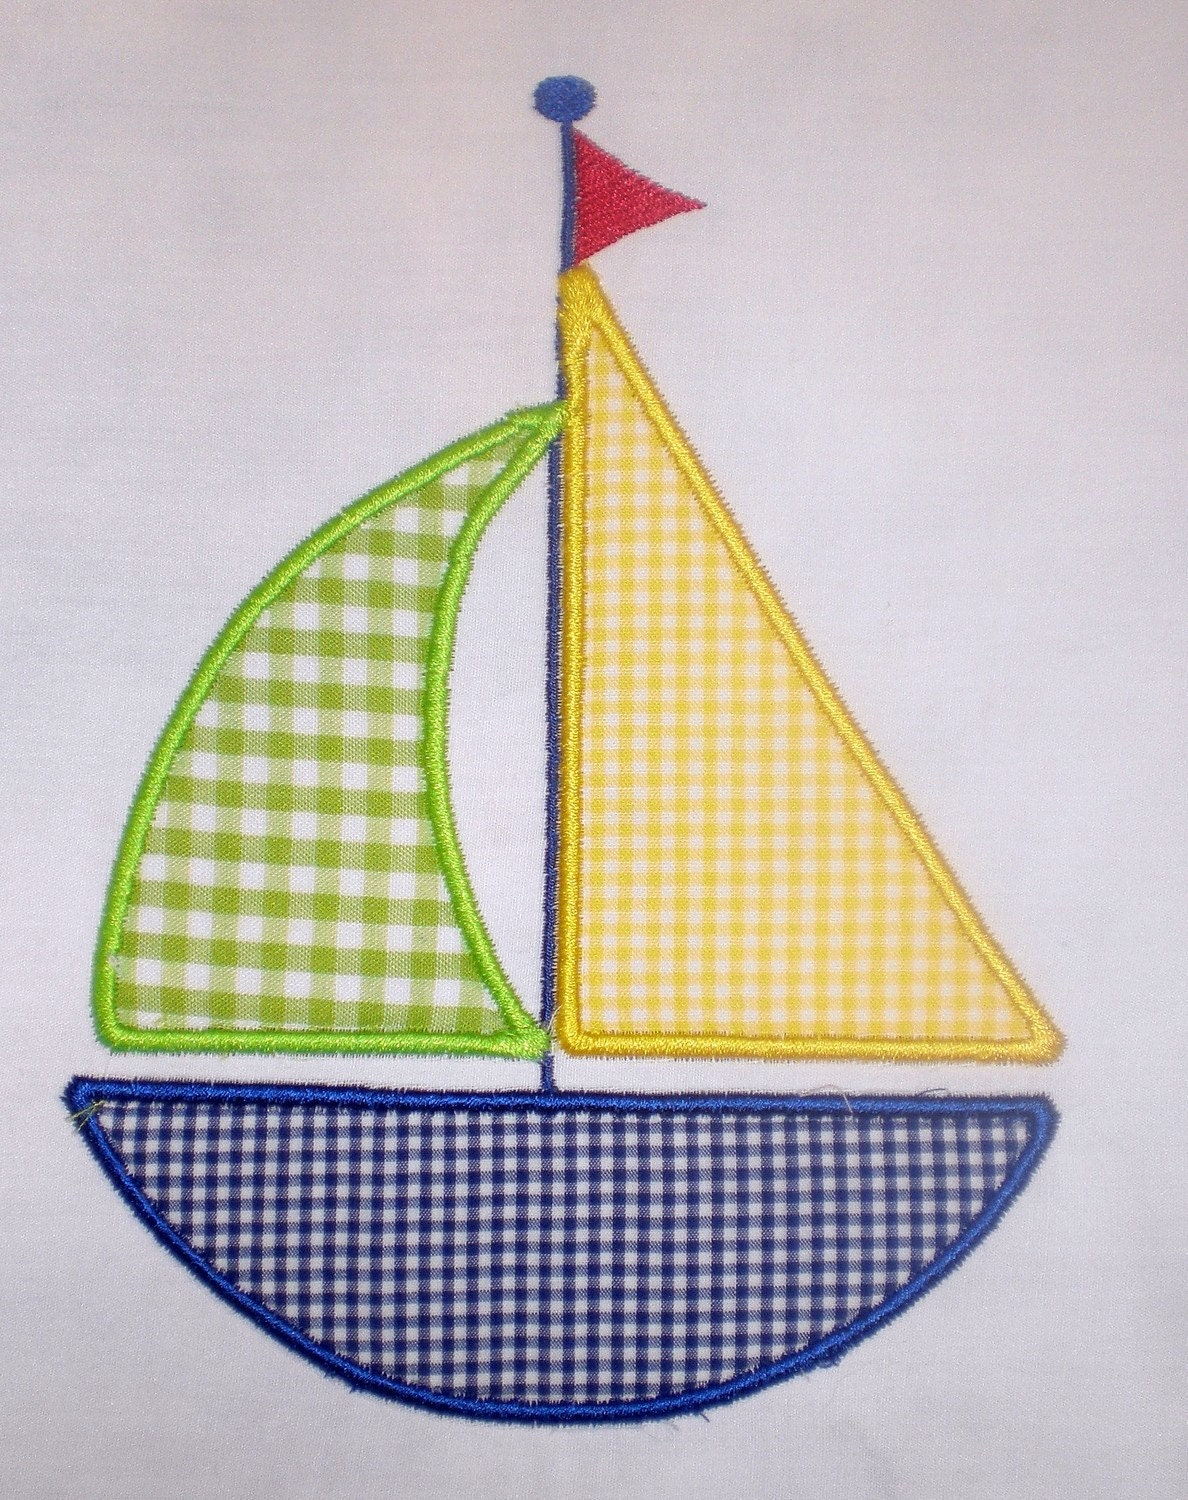 sailboat embroidery design applique. Black Bedroom Furniture Sets. Home Design Ideas